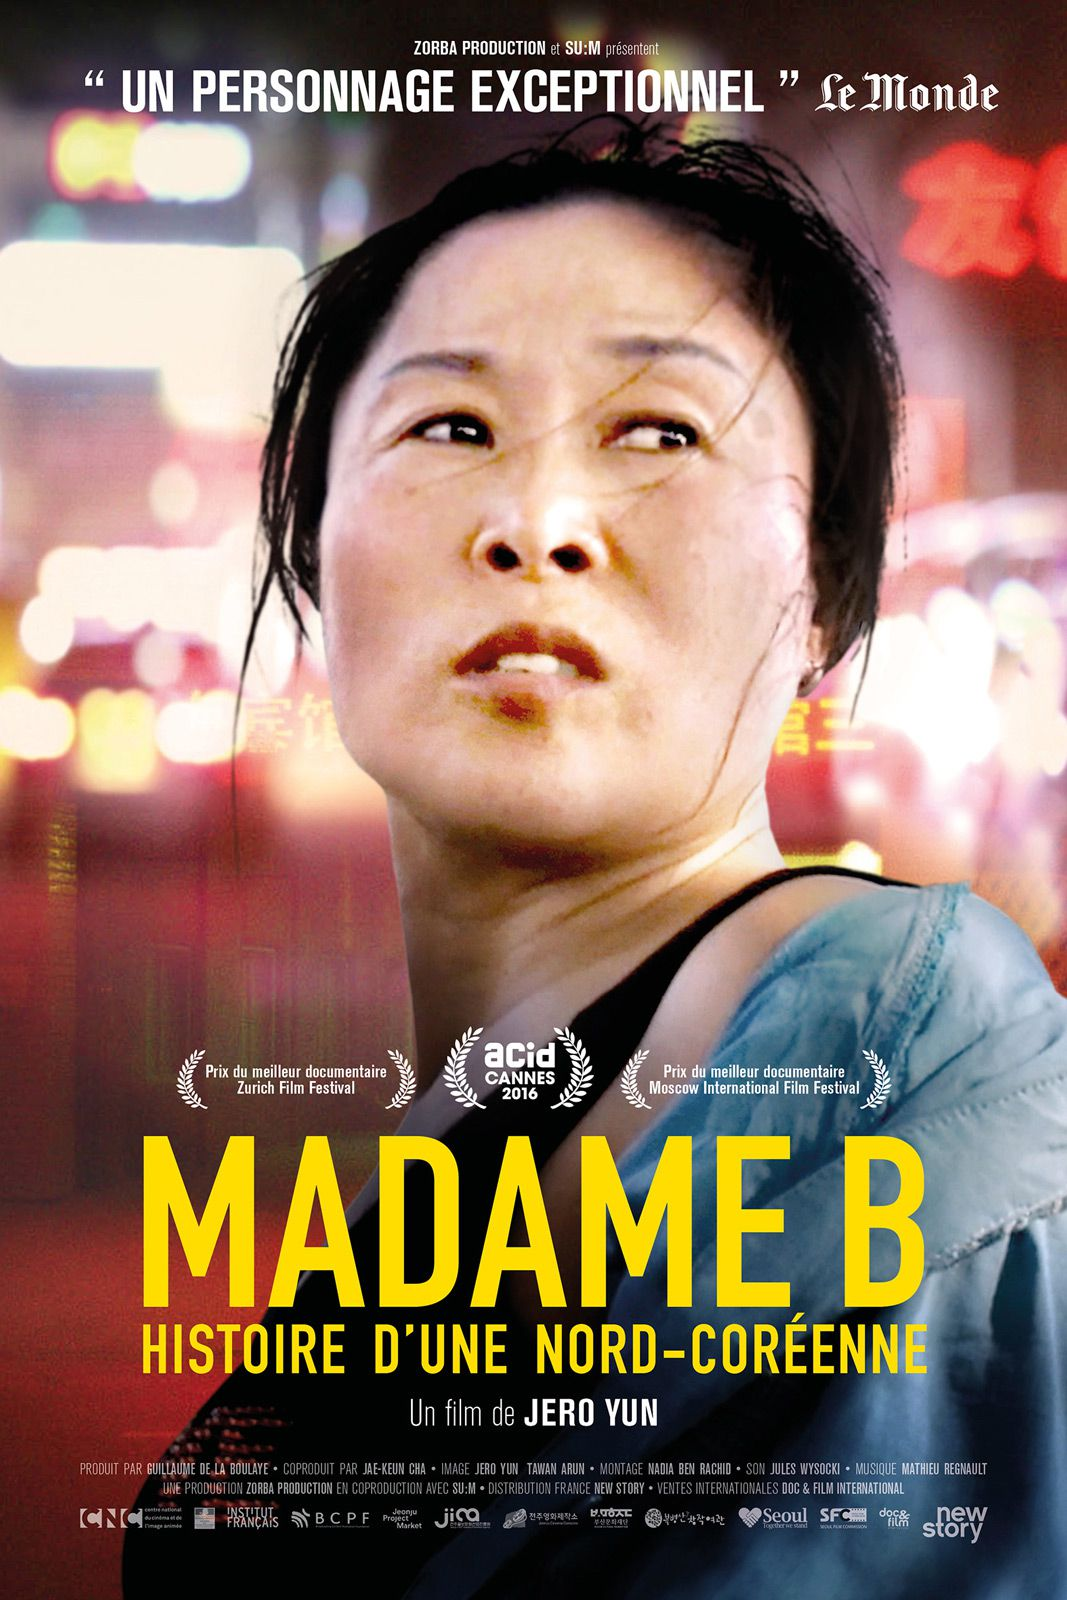 Madame B., histoire d'une Nord-Coréenne - Documentaire (2017) streaming VF gratuit complet